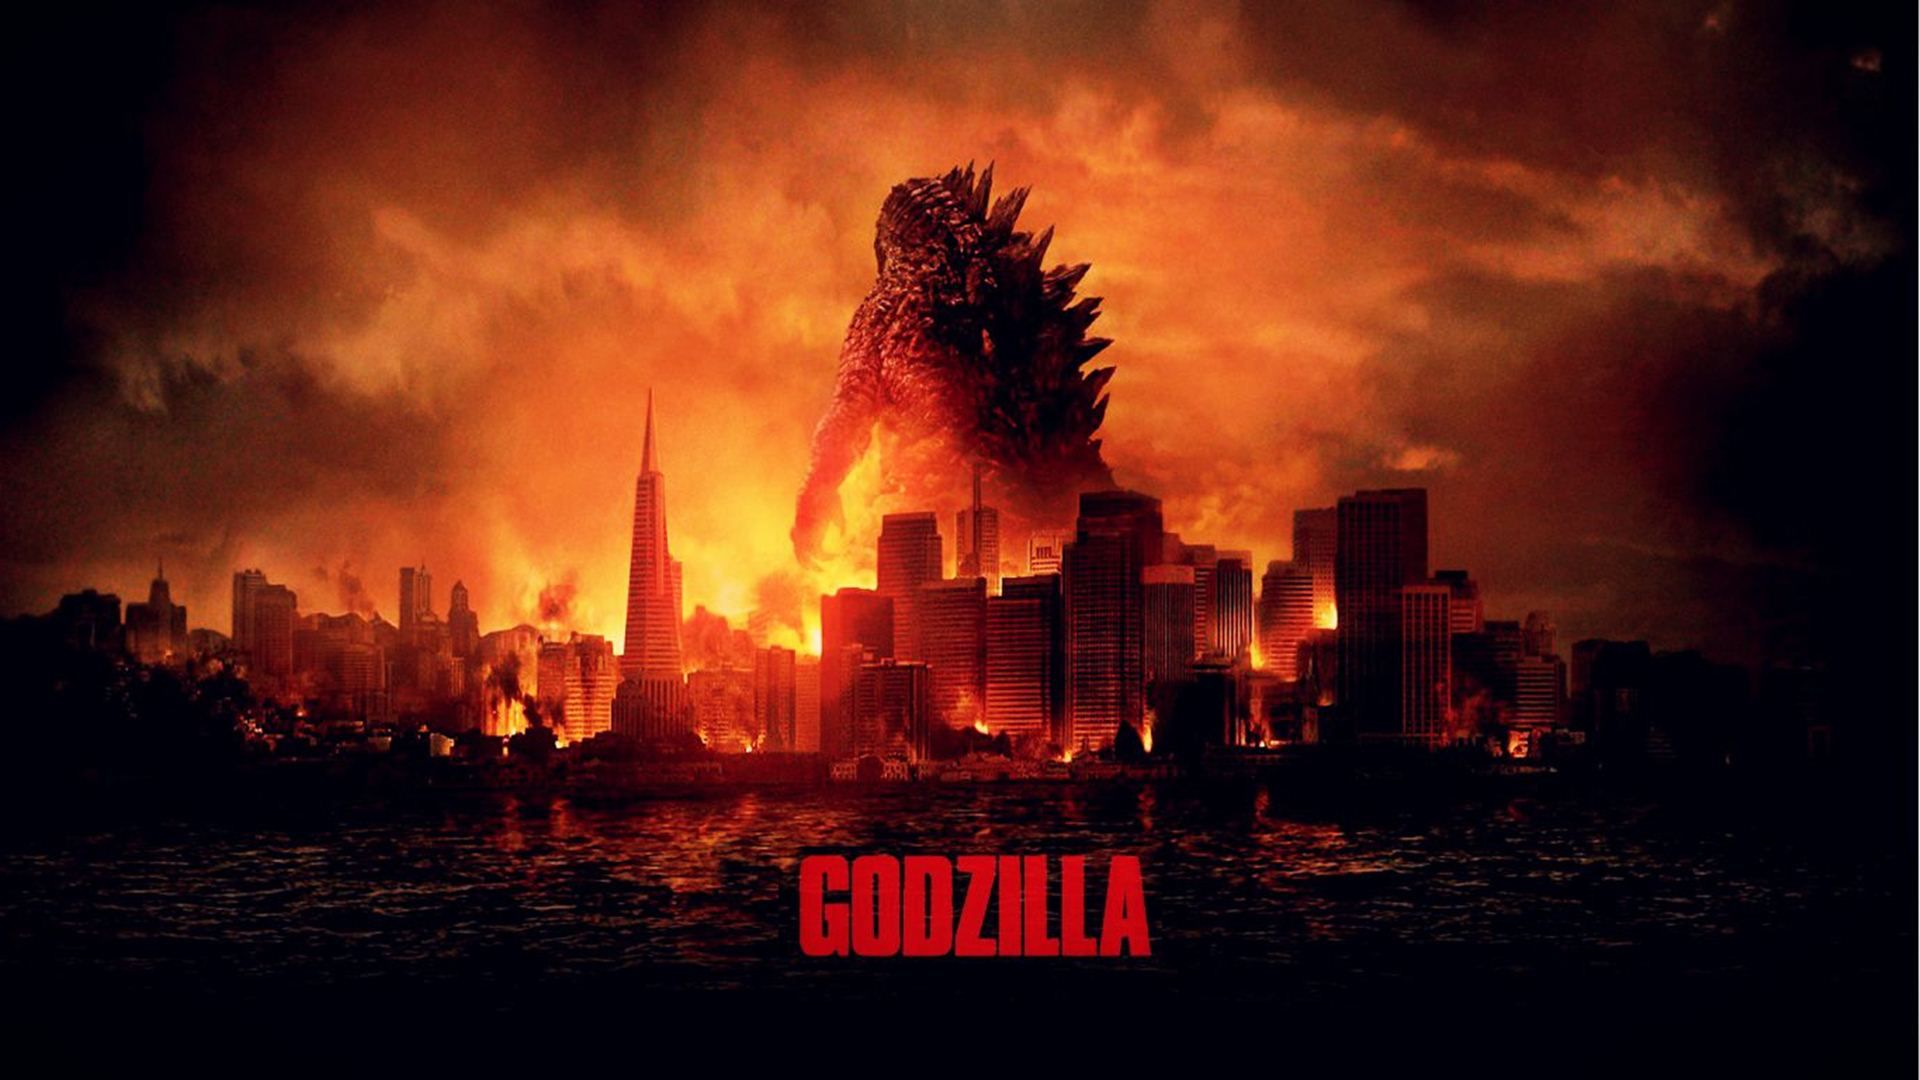 Godzilla Monsters HD desktop wallpaper Widescreen High